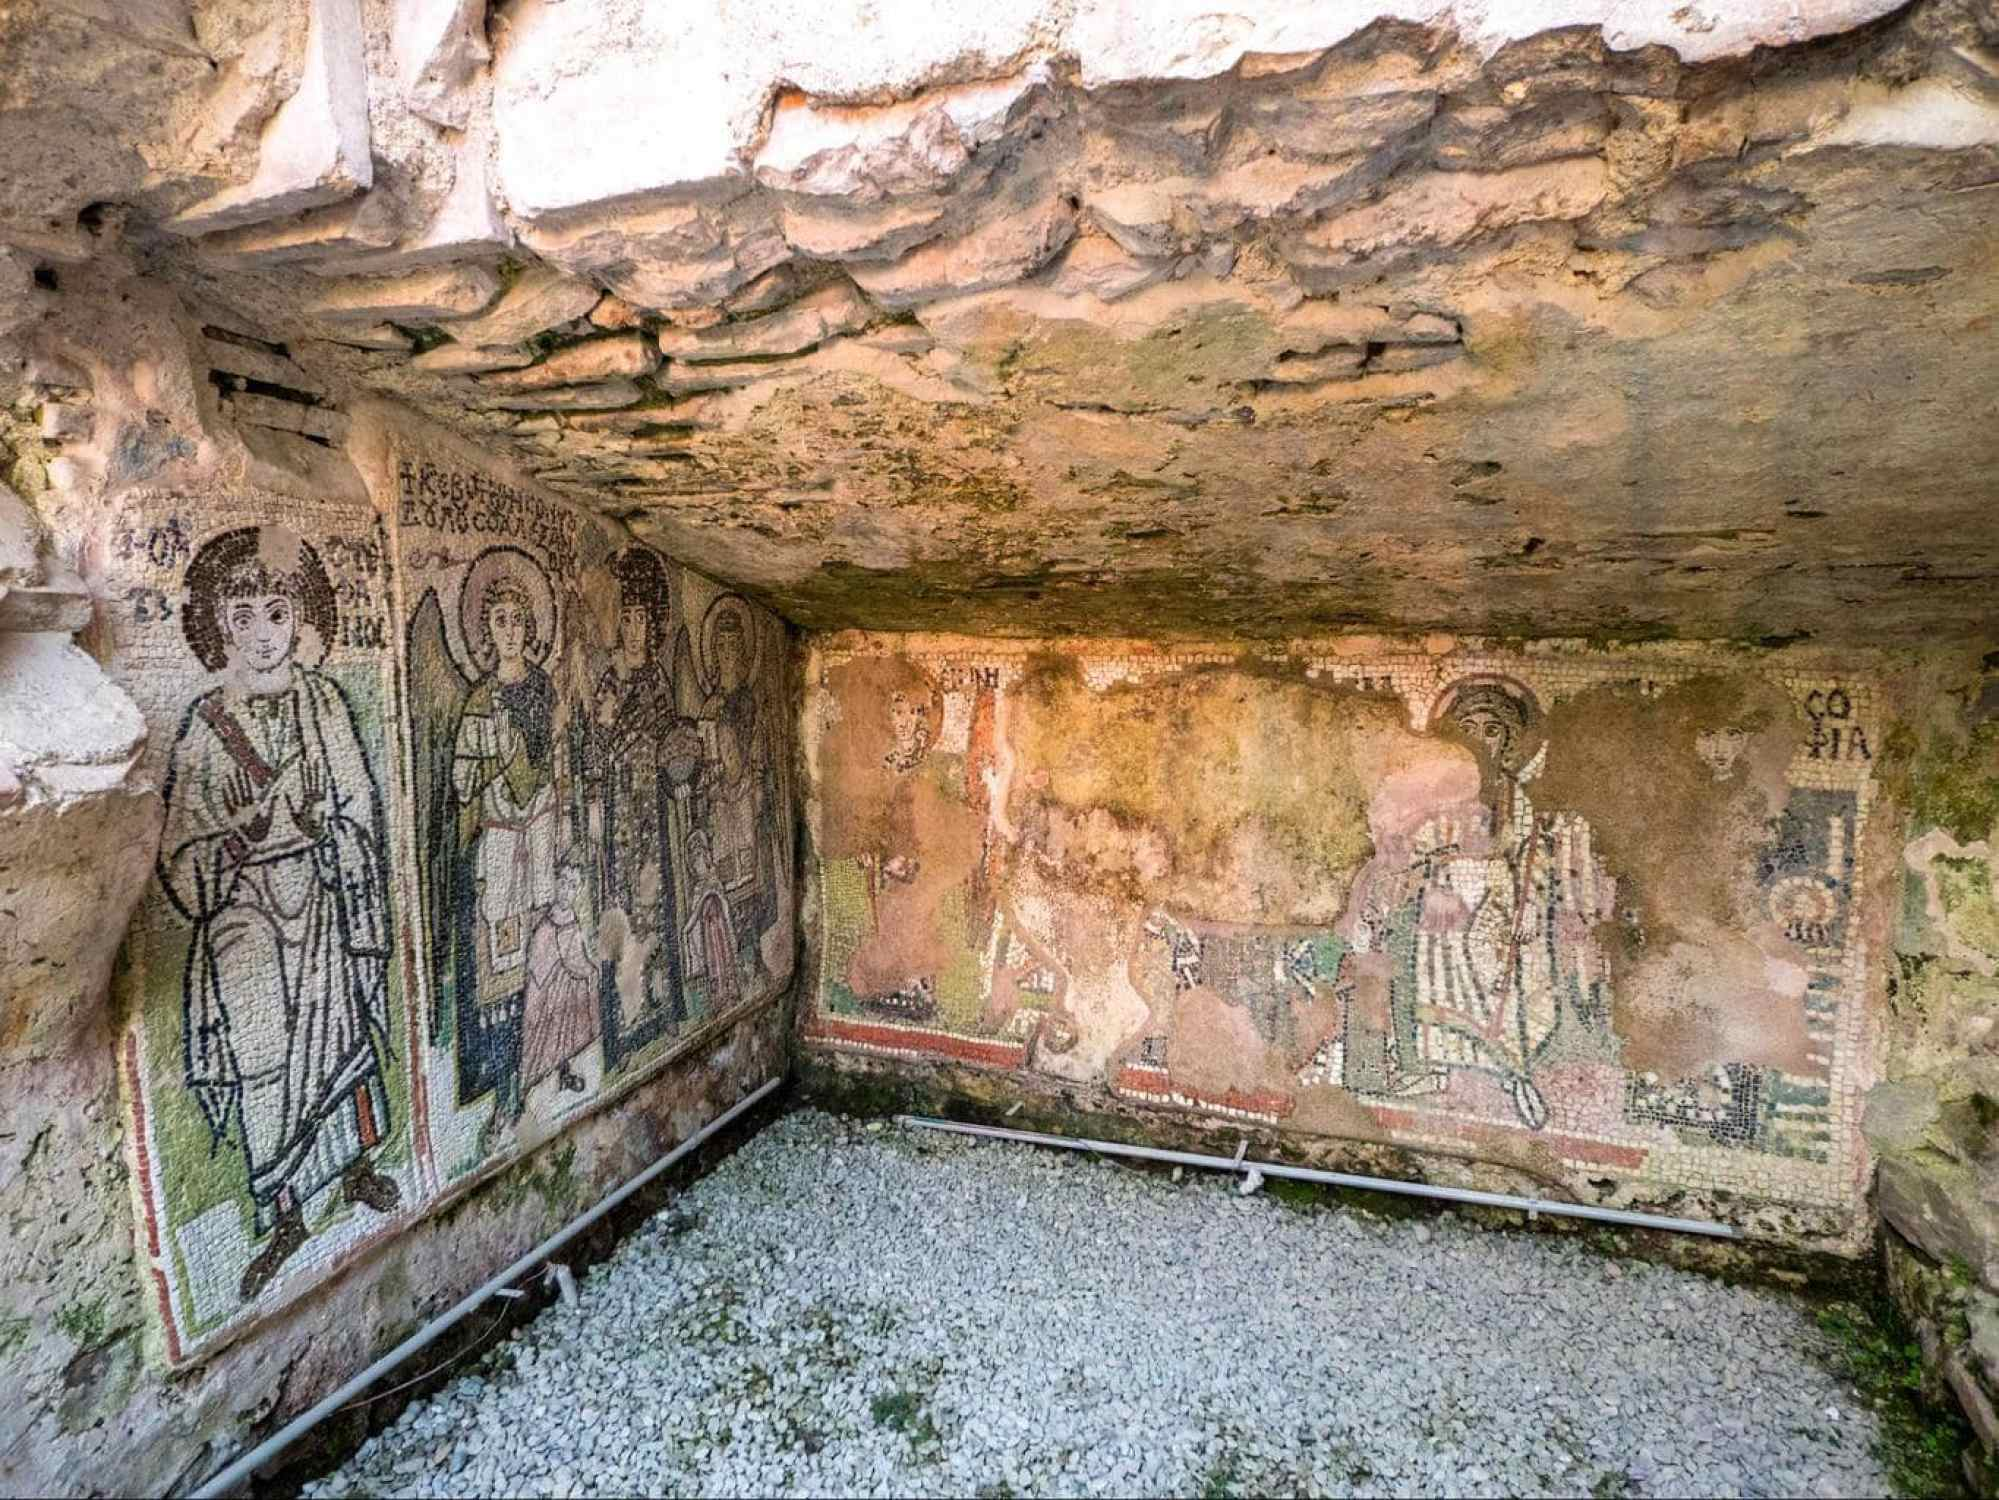 Frescoes inside the Byzantine church of the Roman Amphitheatre of Durres